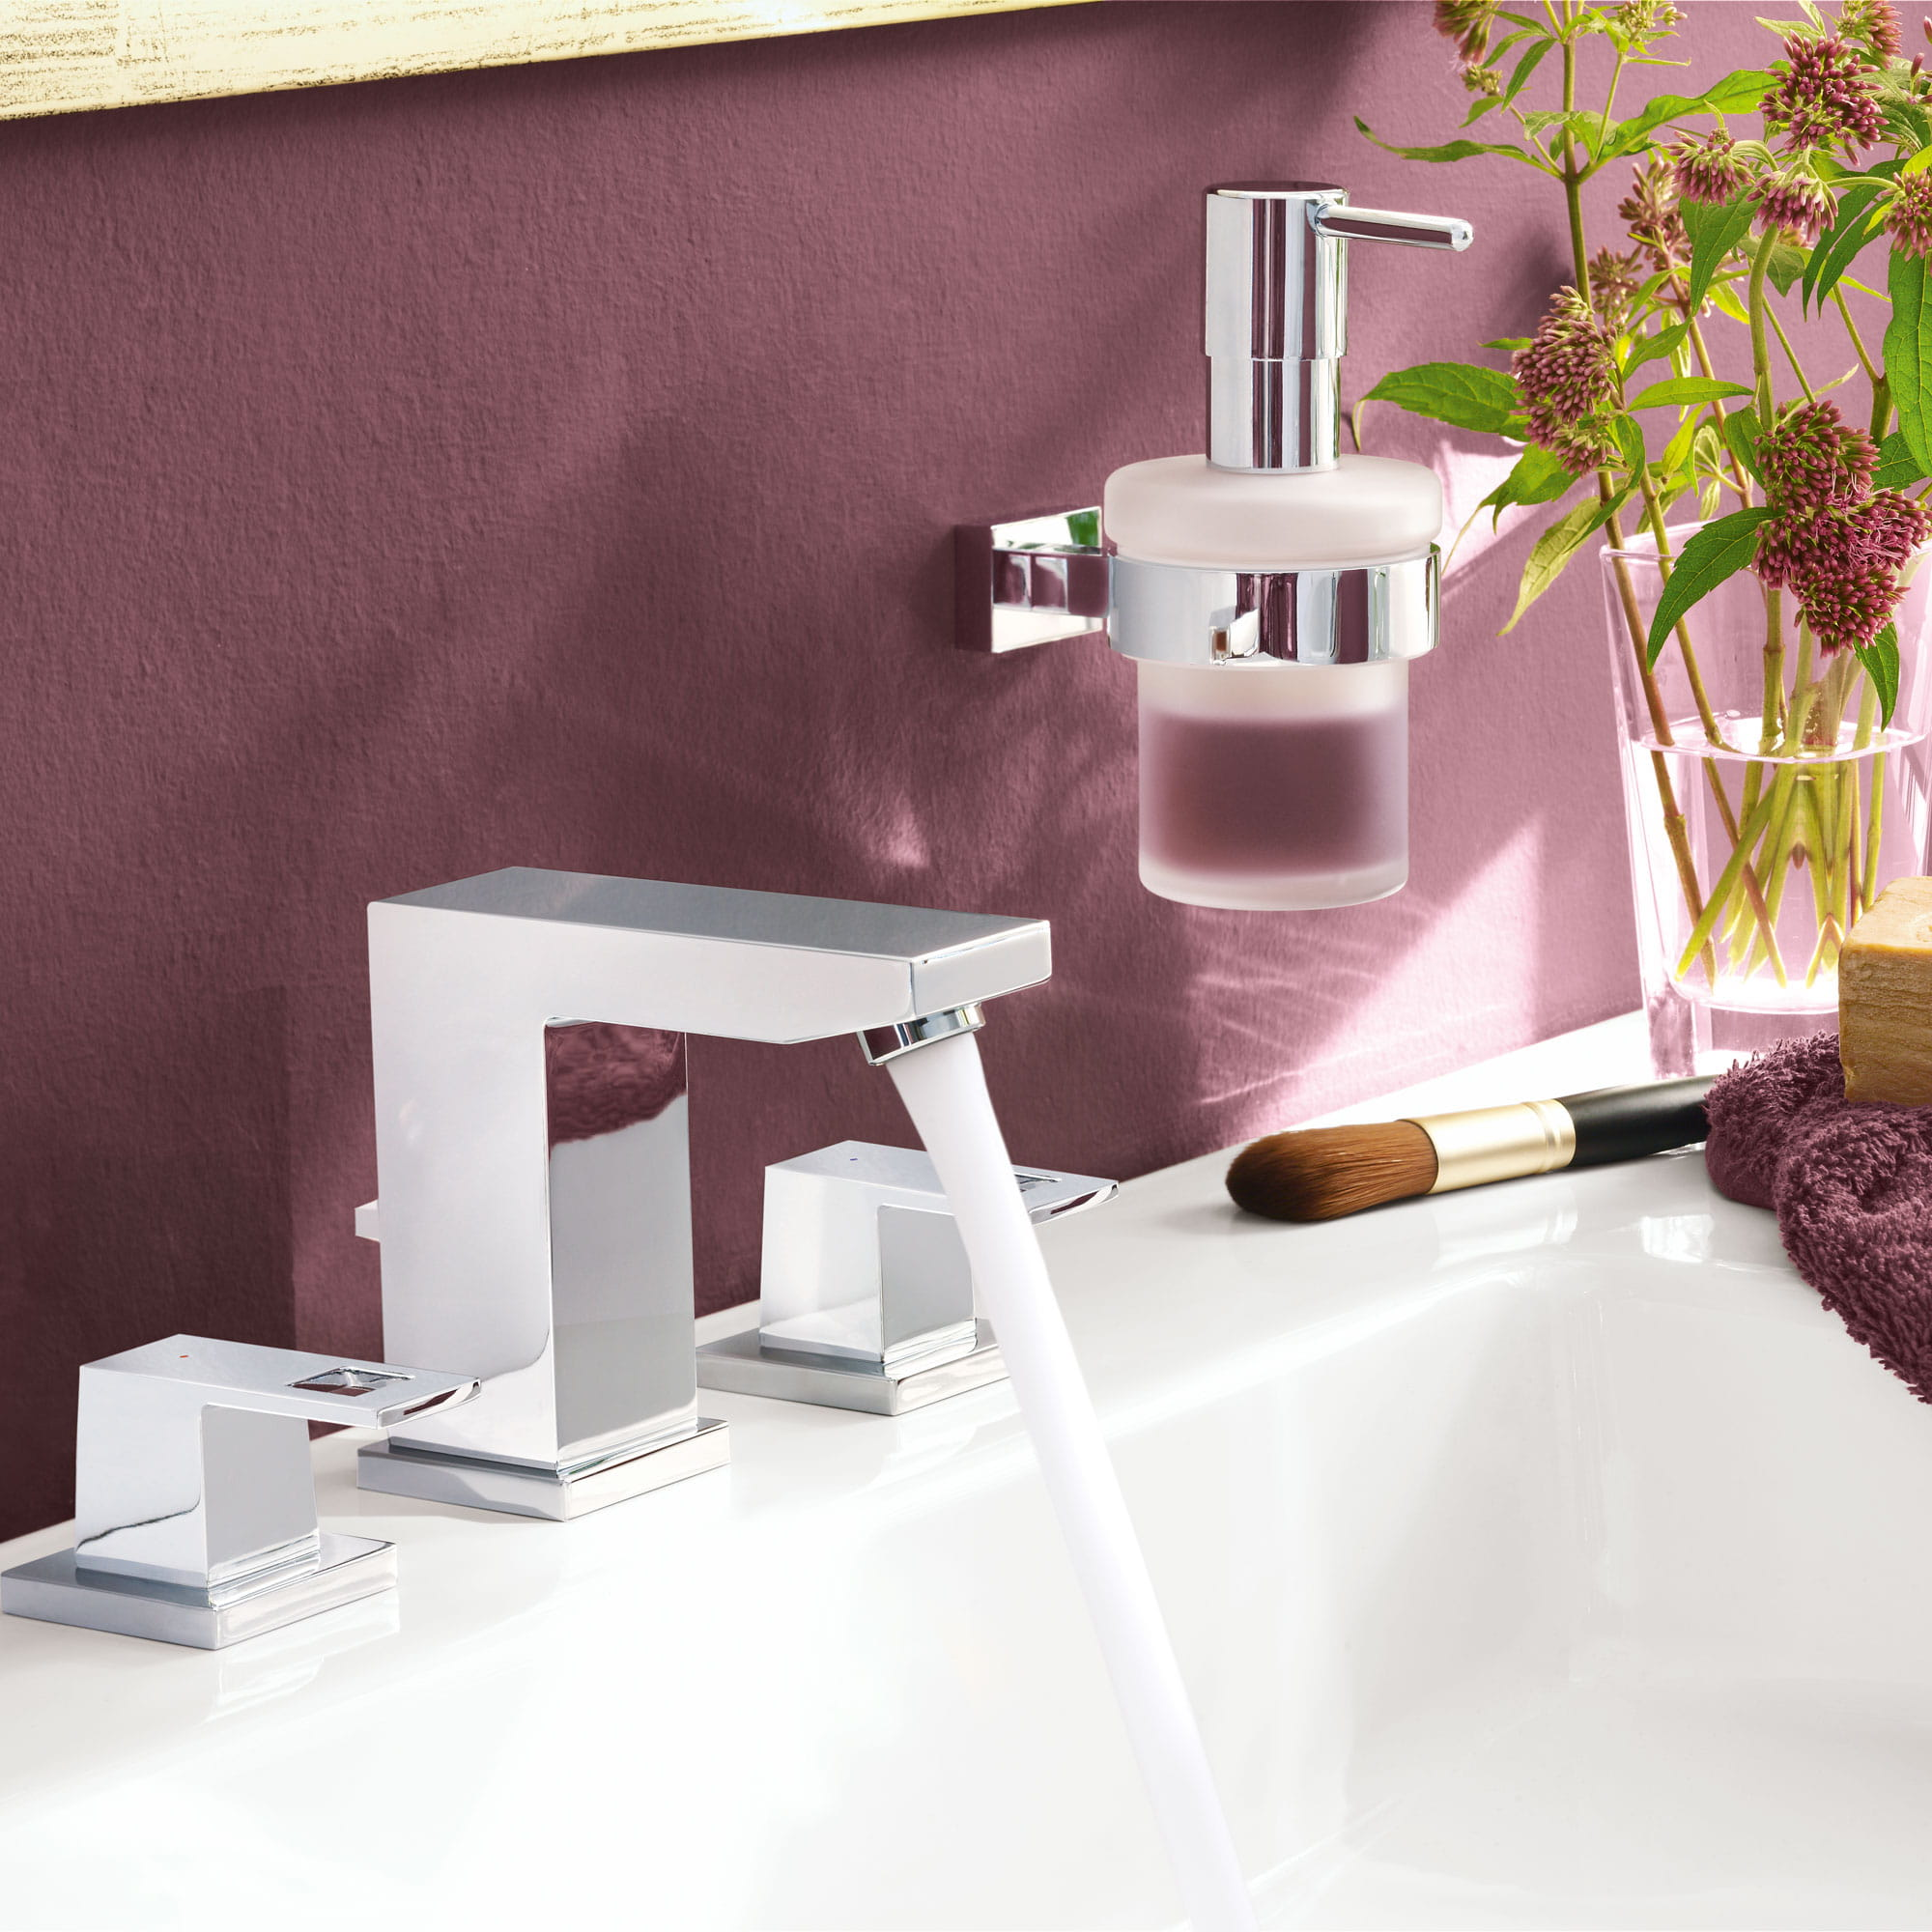 Bathroom faucet in a plum colored room.